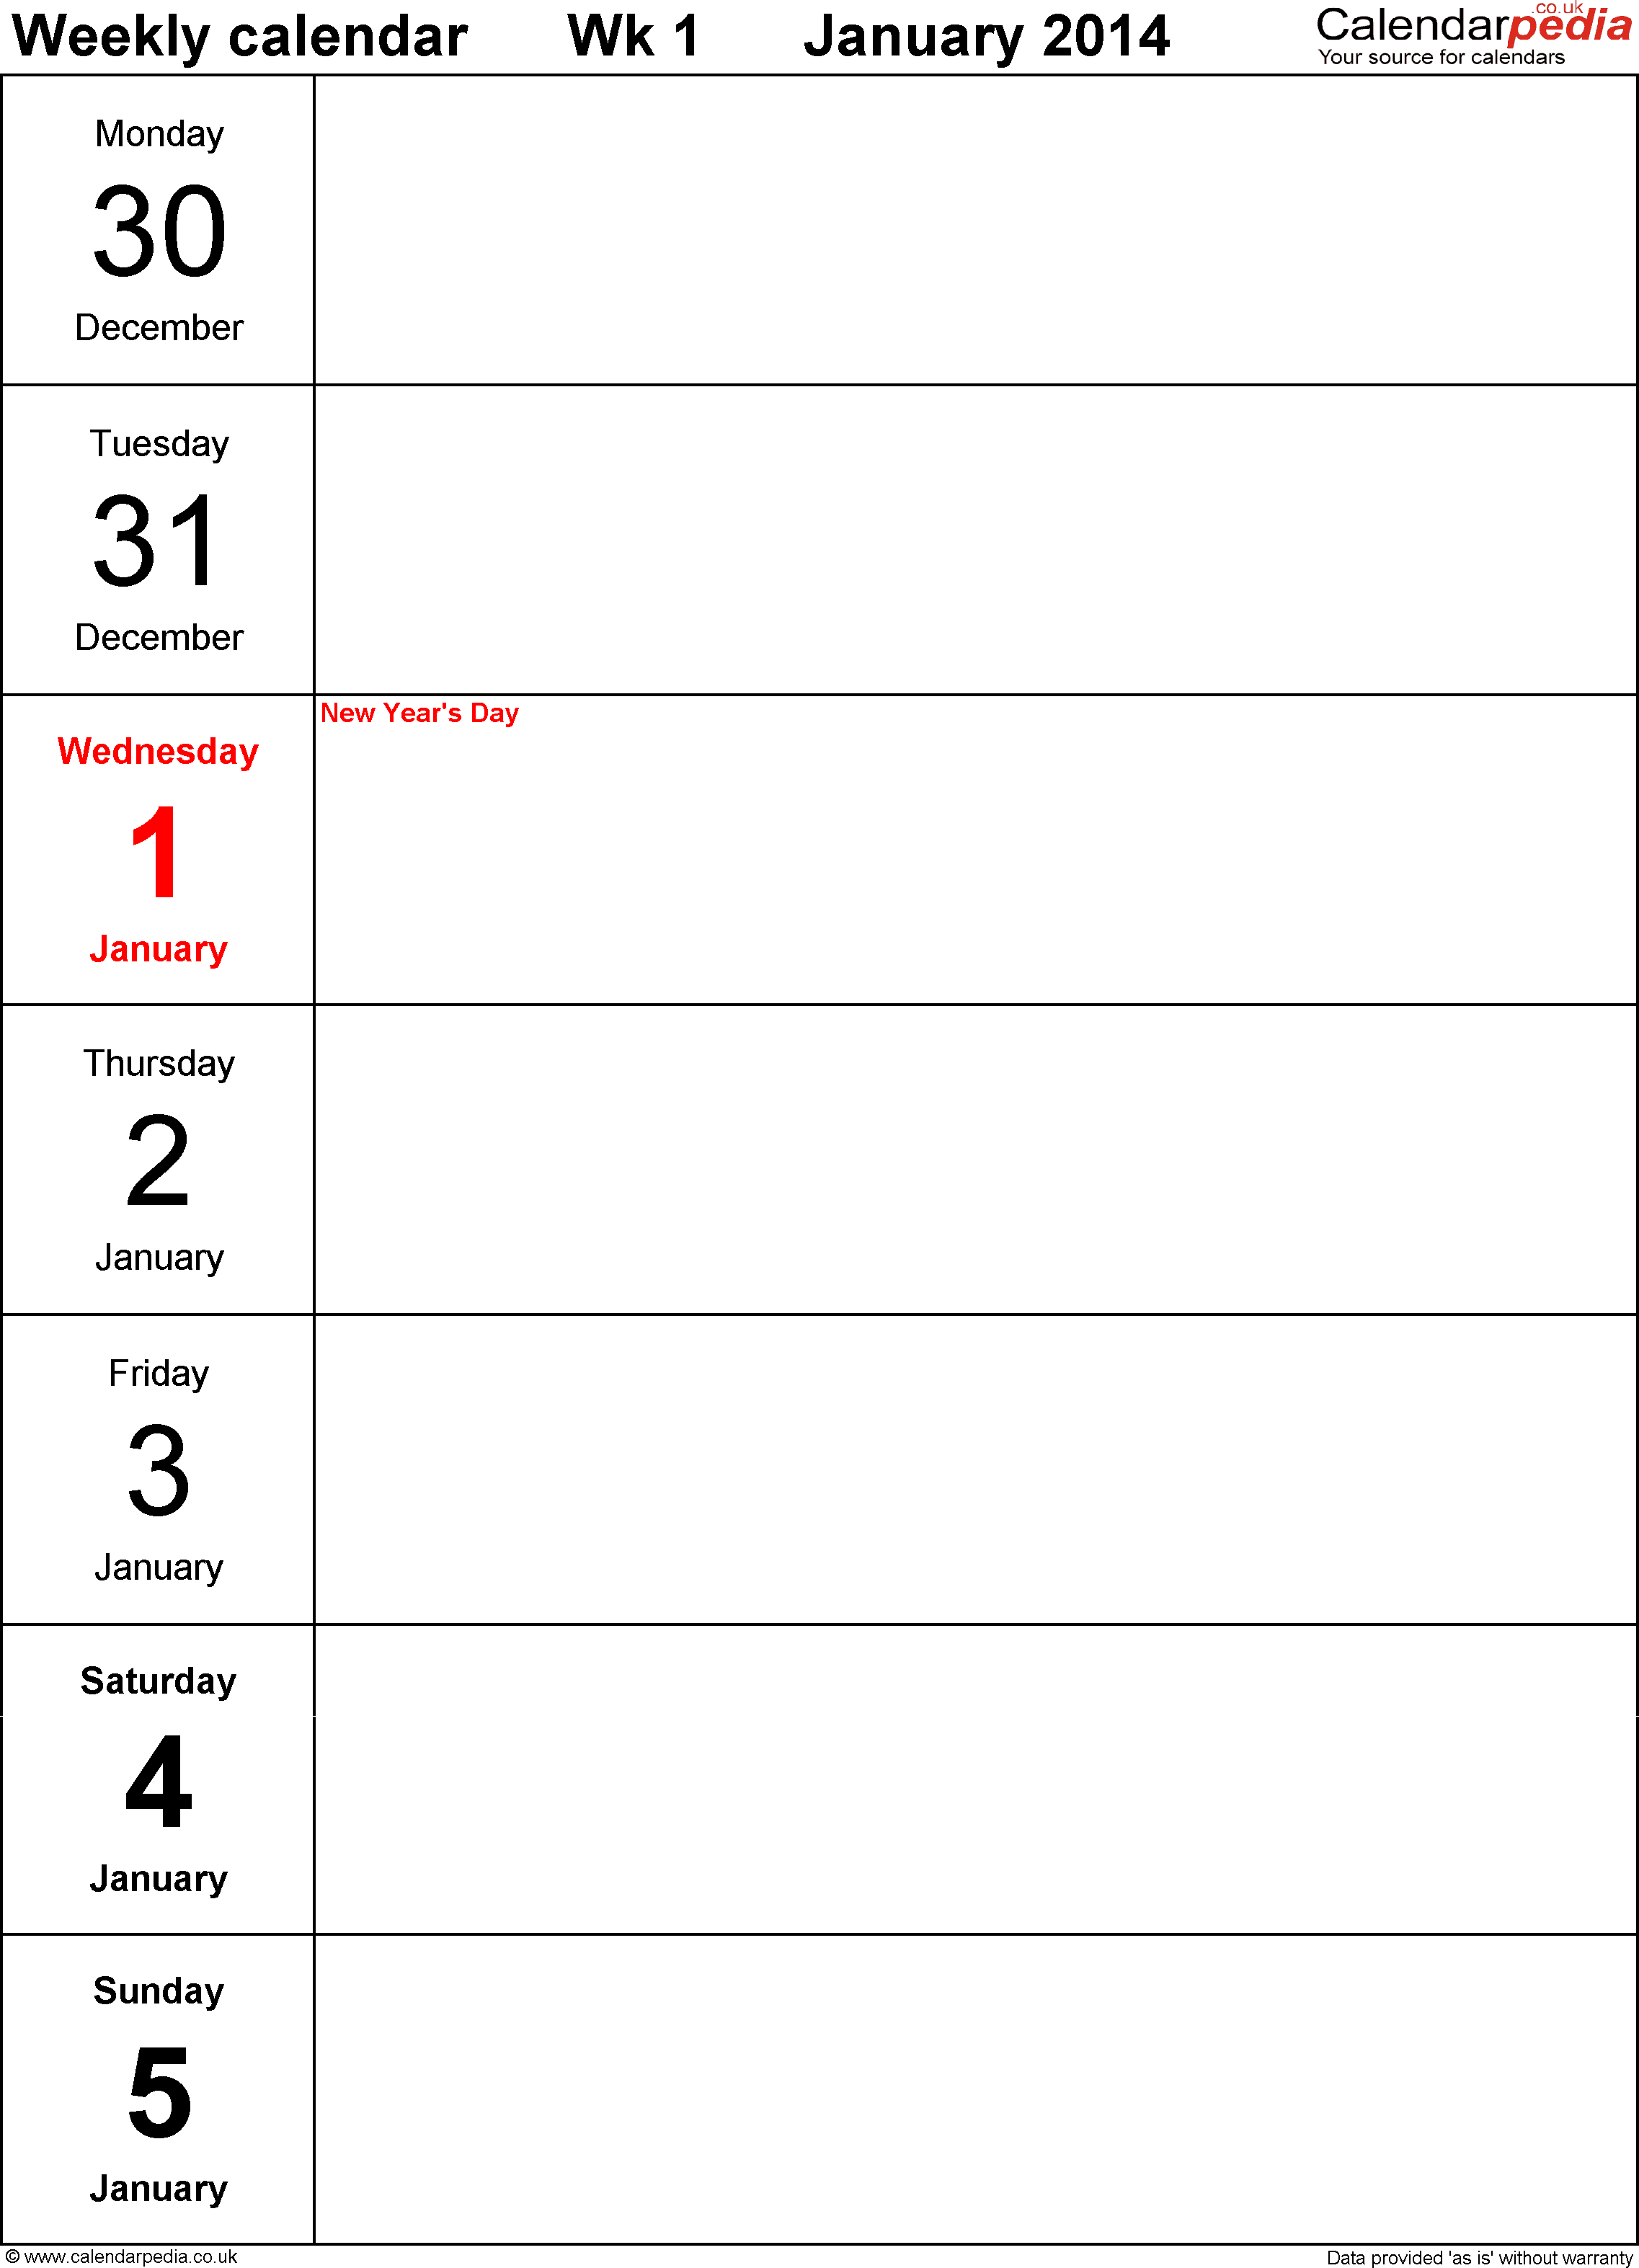 Download PDF template 4: Weekly calendar 2014, portrait orientation, days vertically, 53 pages (1 calendar week on 1 page)